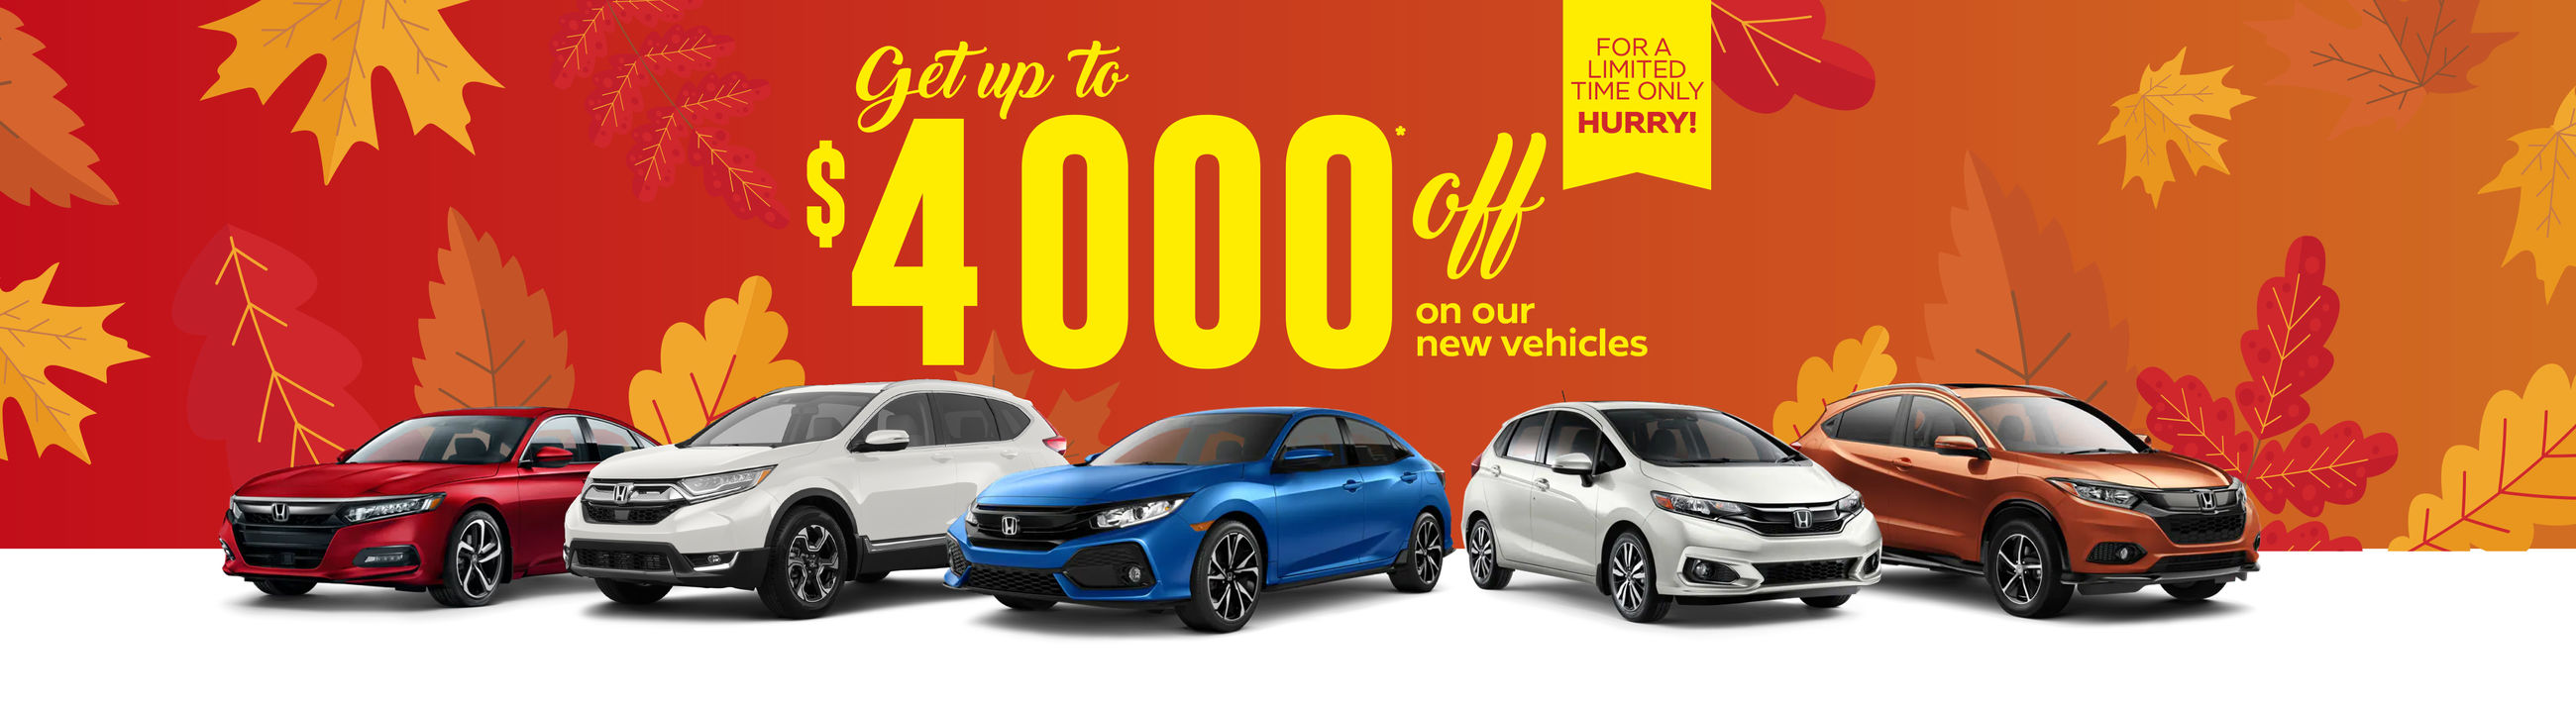 Up to $4000 off (new)